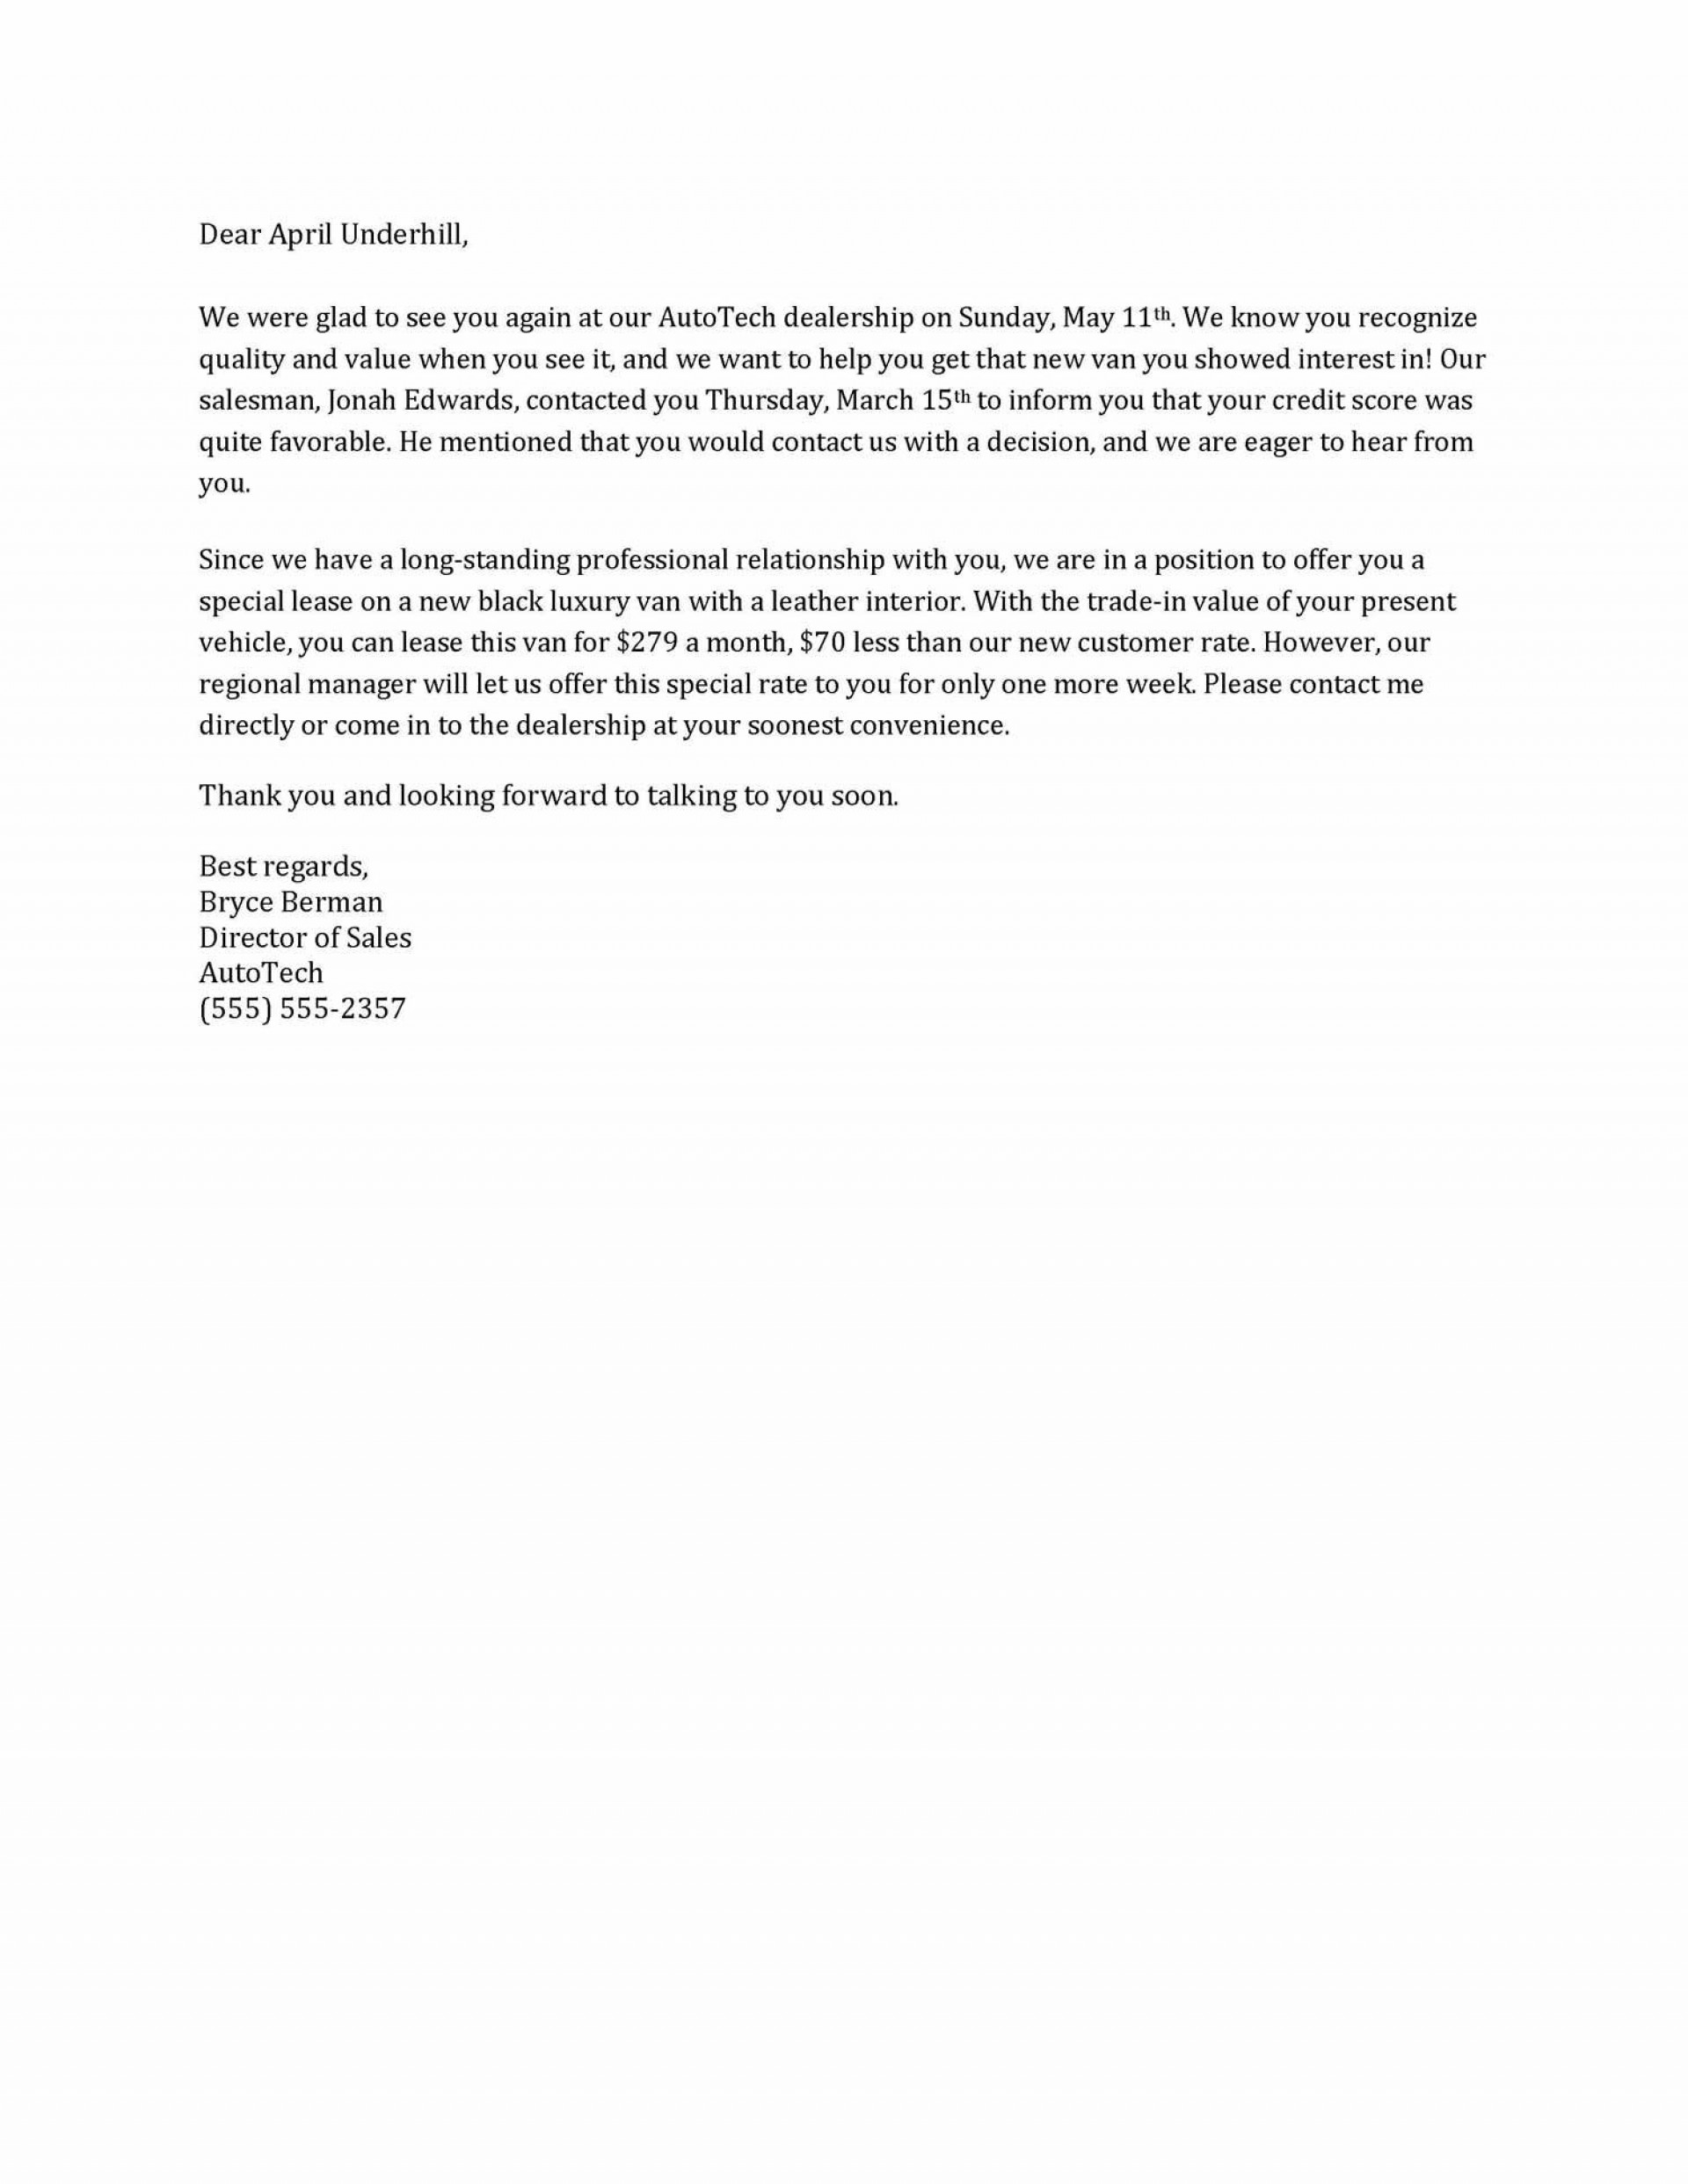 009 Impressive Follow Up Email Template To Client Sample  Simple Letter For Payment After Sending Proposal1920